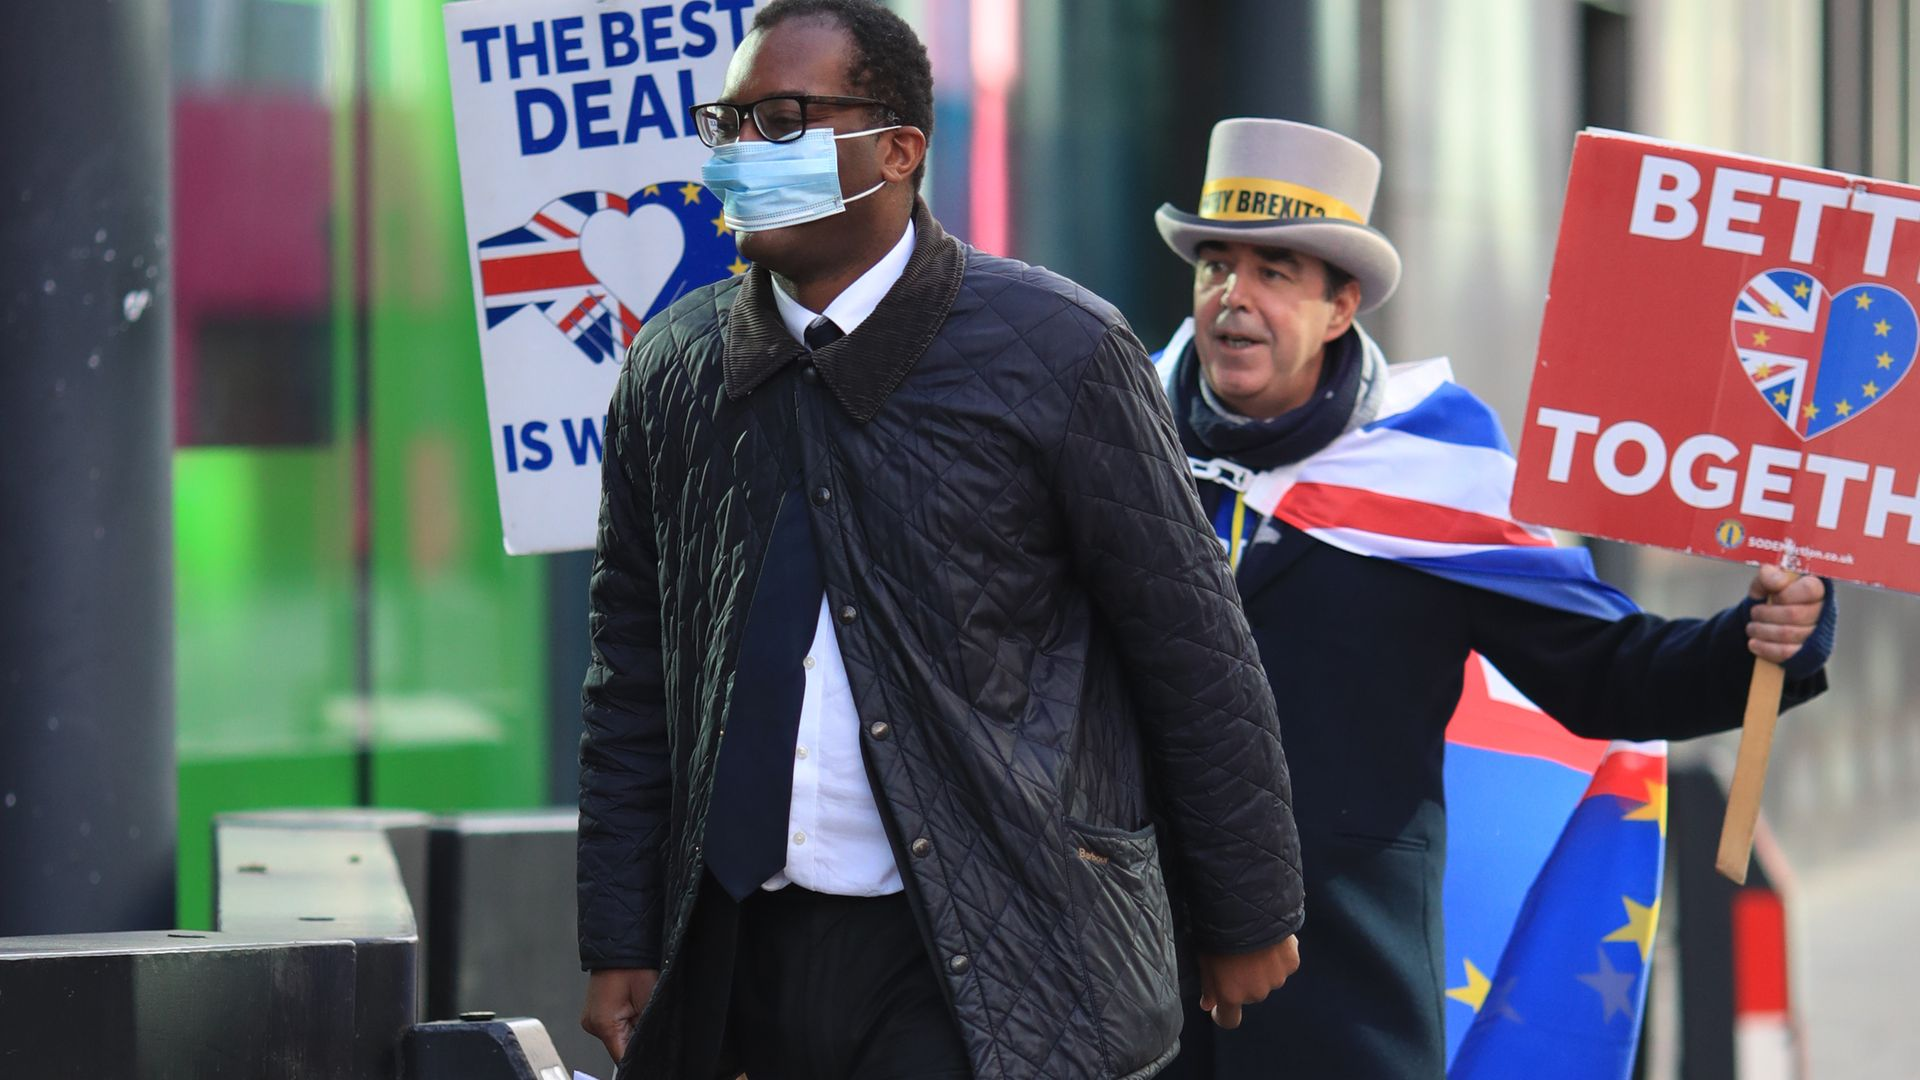 """Business secretary Kwasi Kwarteng admitted that January trade figures were """"exceptionally bad"""" due to Brexit uncertainty - Credit: PA"""